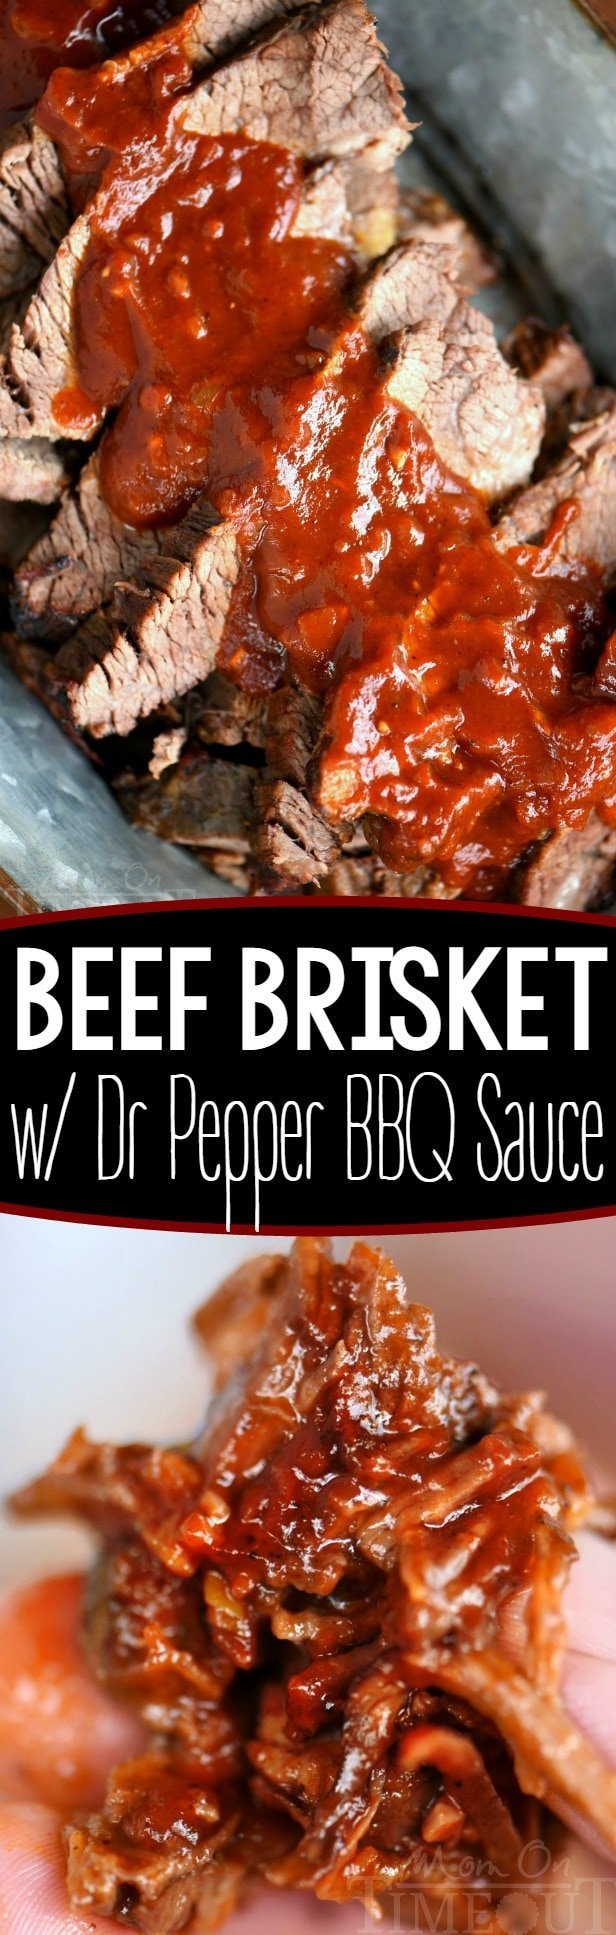 Beef brisket with dr pepper barbecue sauce mom on timeout for What to serve at a bbq birthday party